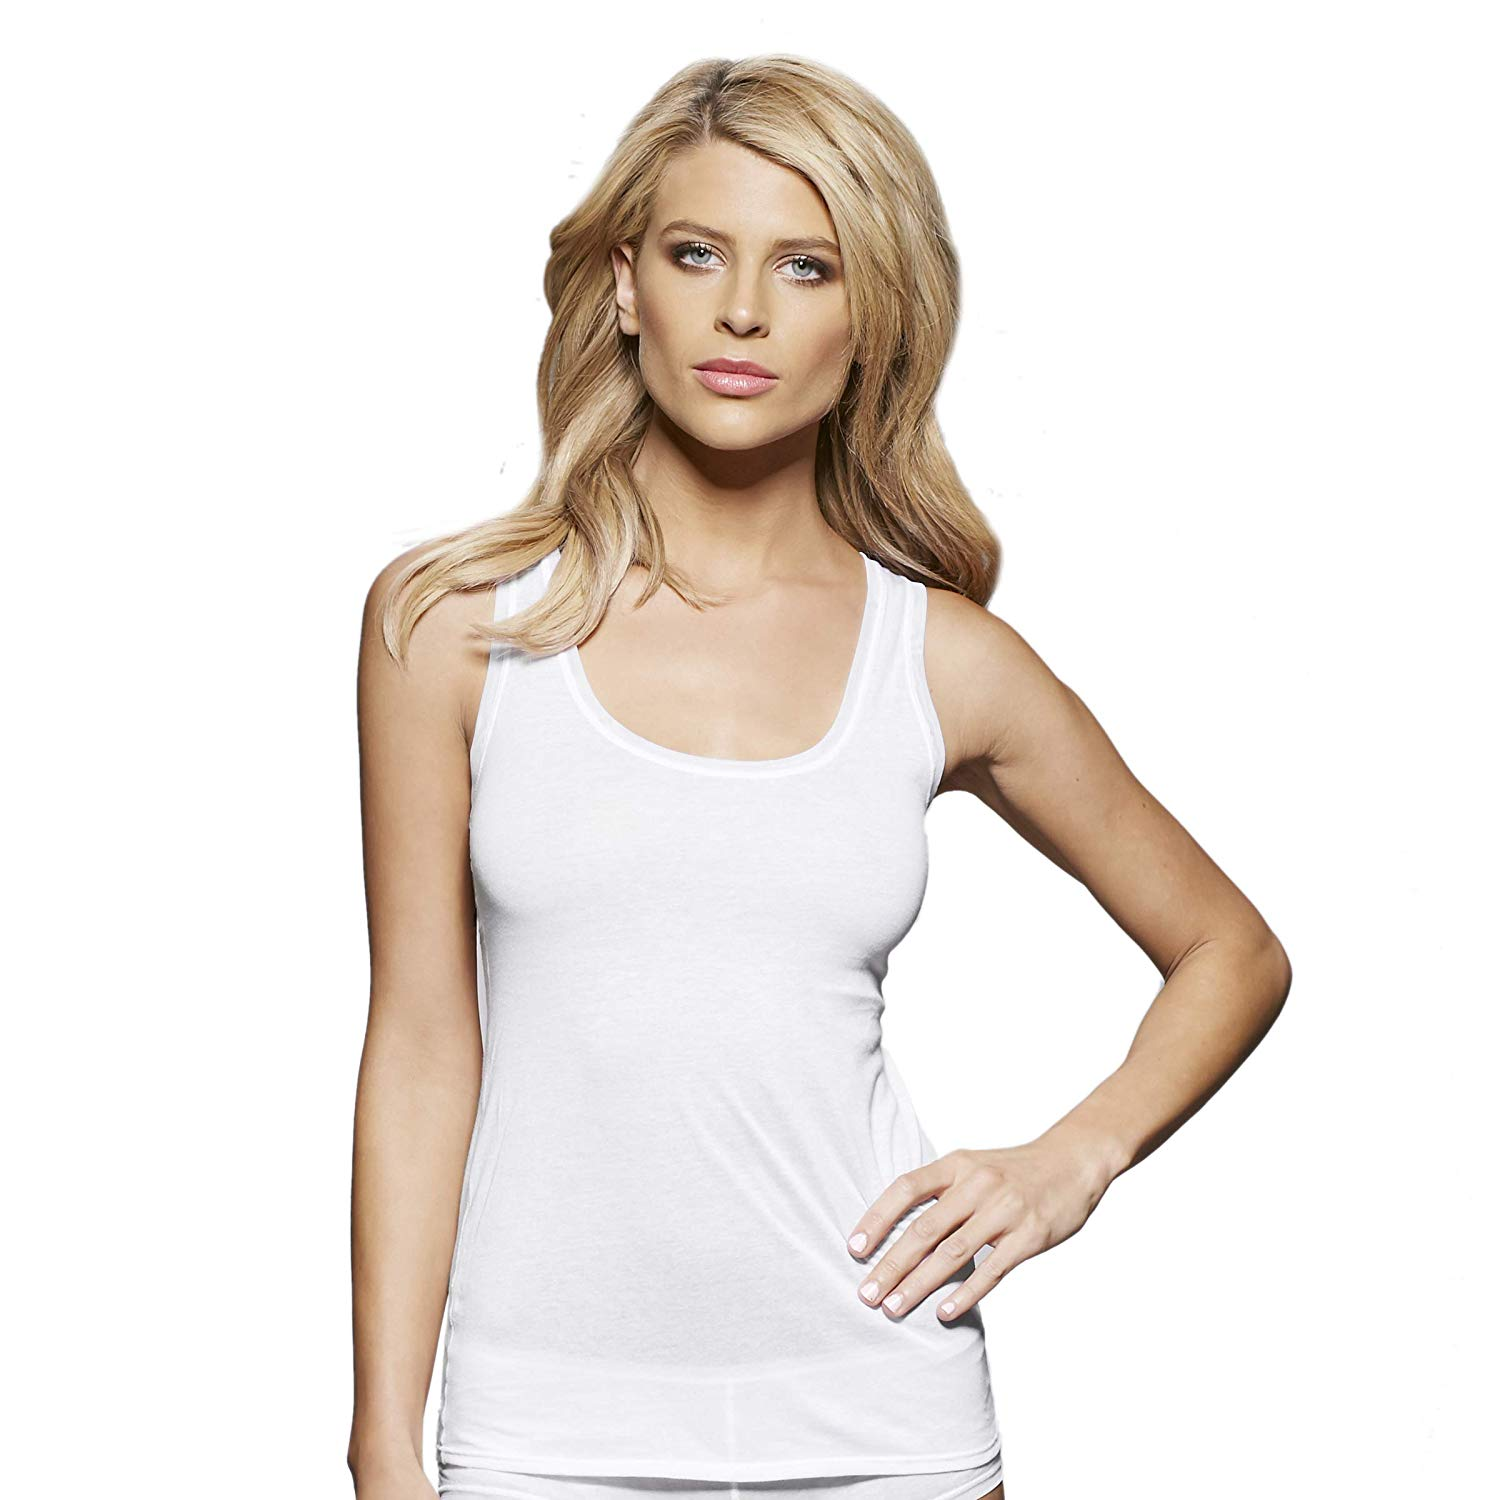 54d48404f5542 Get Quotations · Cami Top for Women, 100% Pure Cotton Cami Tank, Stylish  Wide Strap Camisole